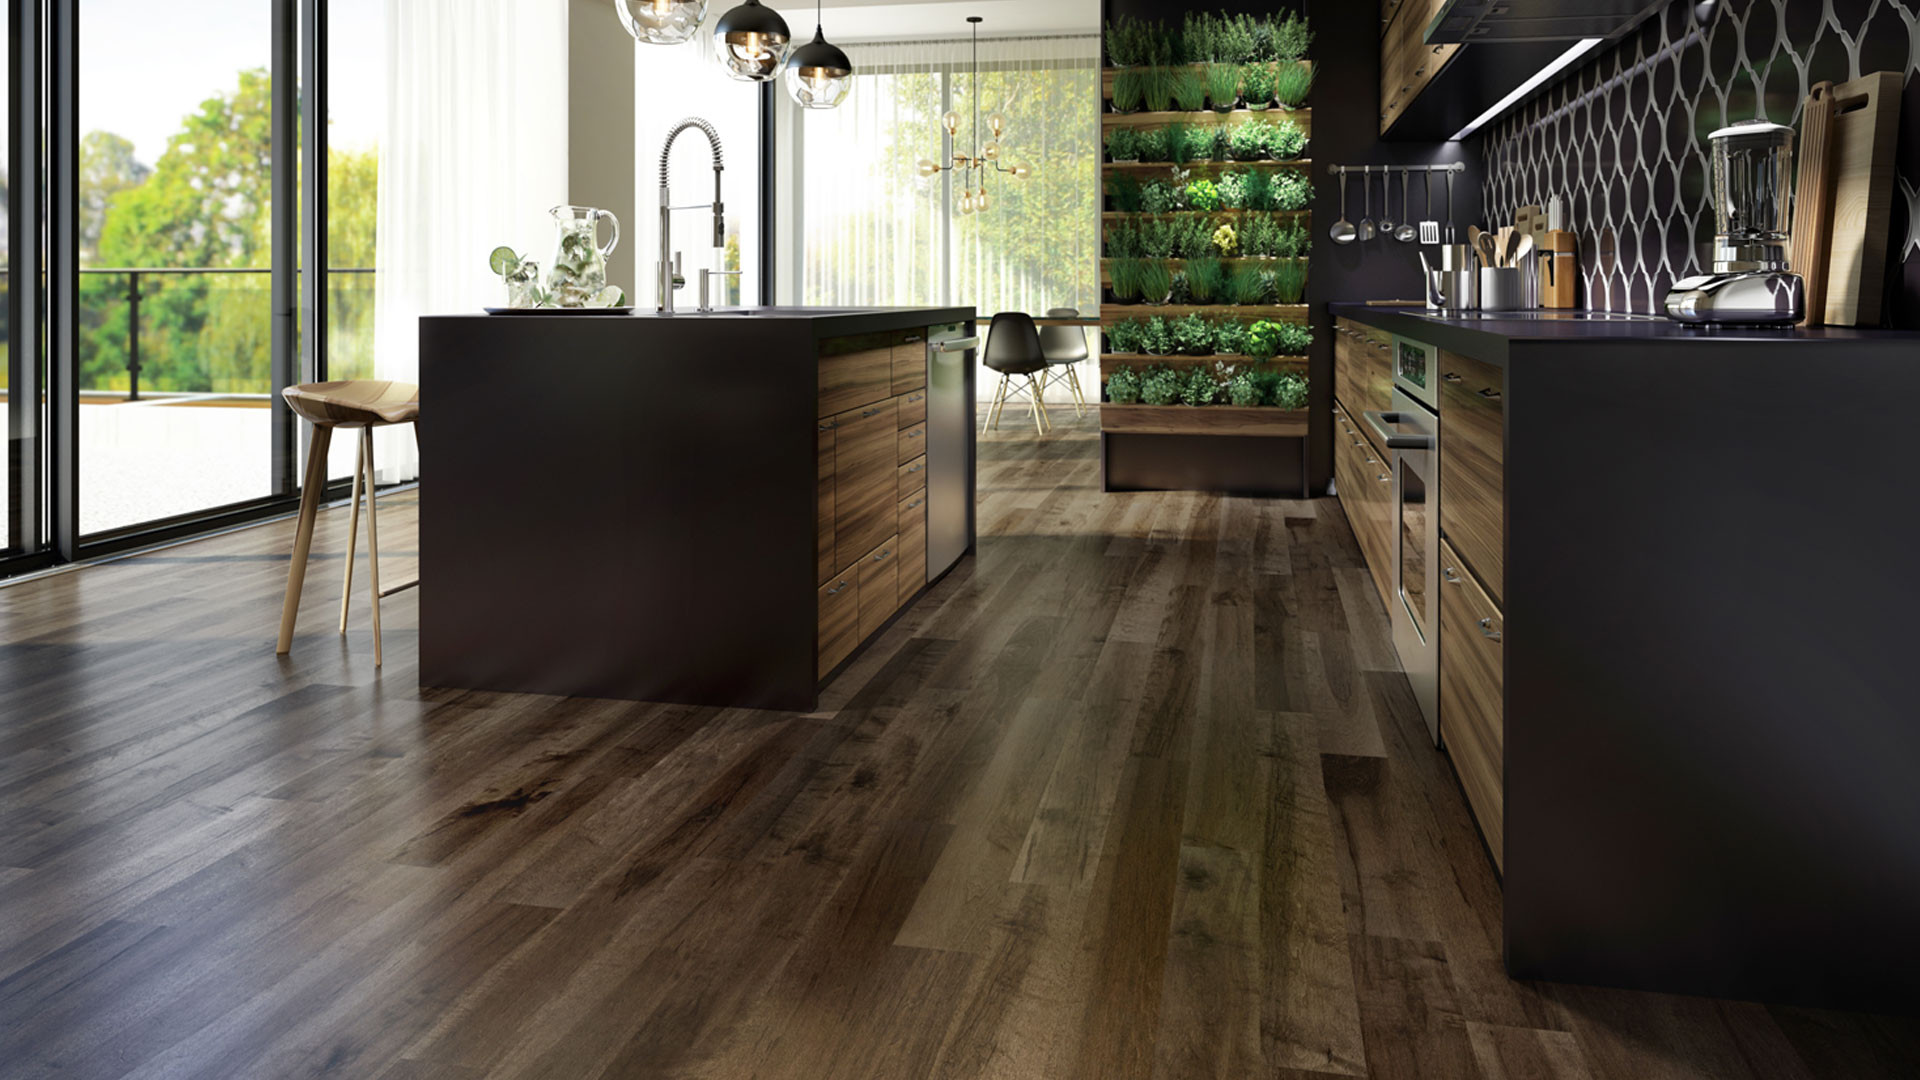 3 Inch Wide Hardwood Flooring Of 4 Latest Hardwood Flooring Trends Lauzon Flooring Intended for Each Of the Following Hardwood Flooring Trends Arising From A Growing Desire for Calmness Tranquility and Well Being is Reflected In Our organik Series